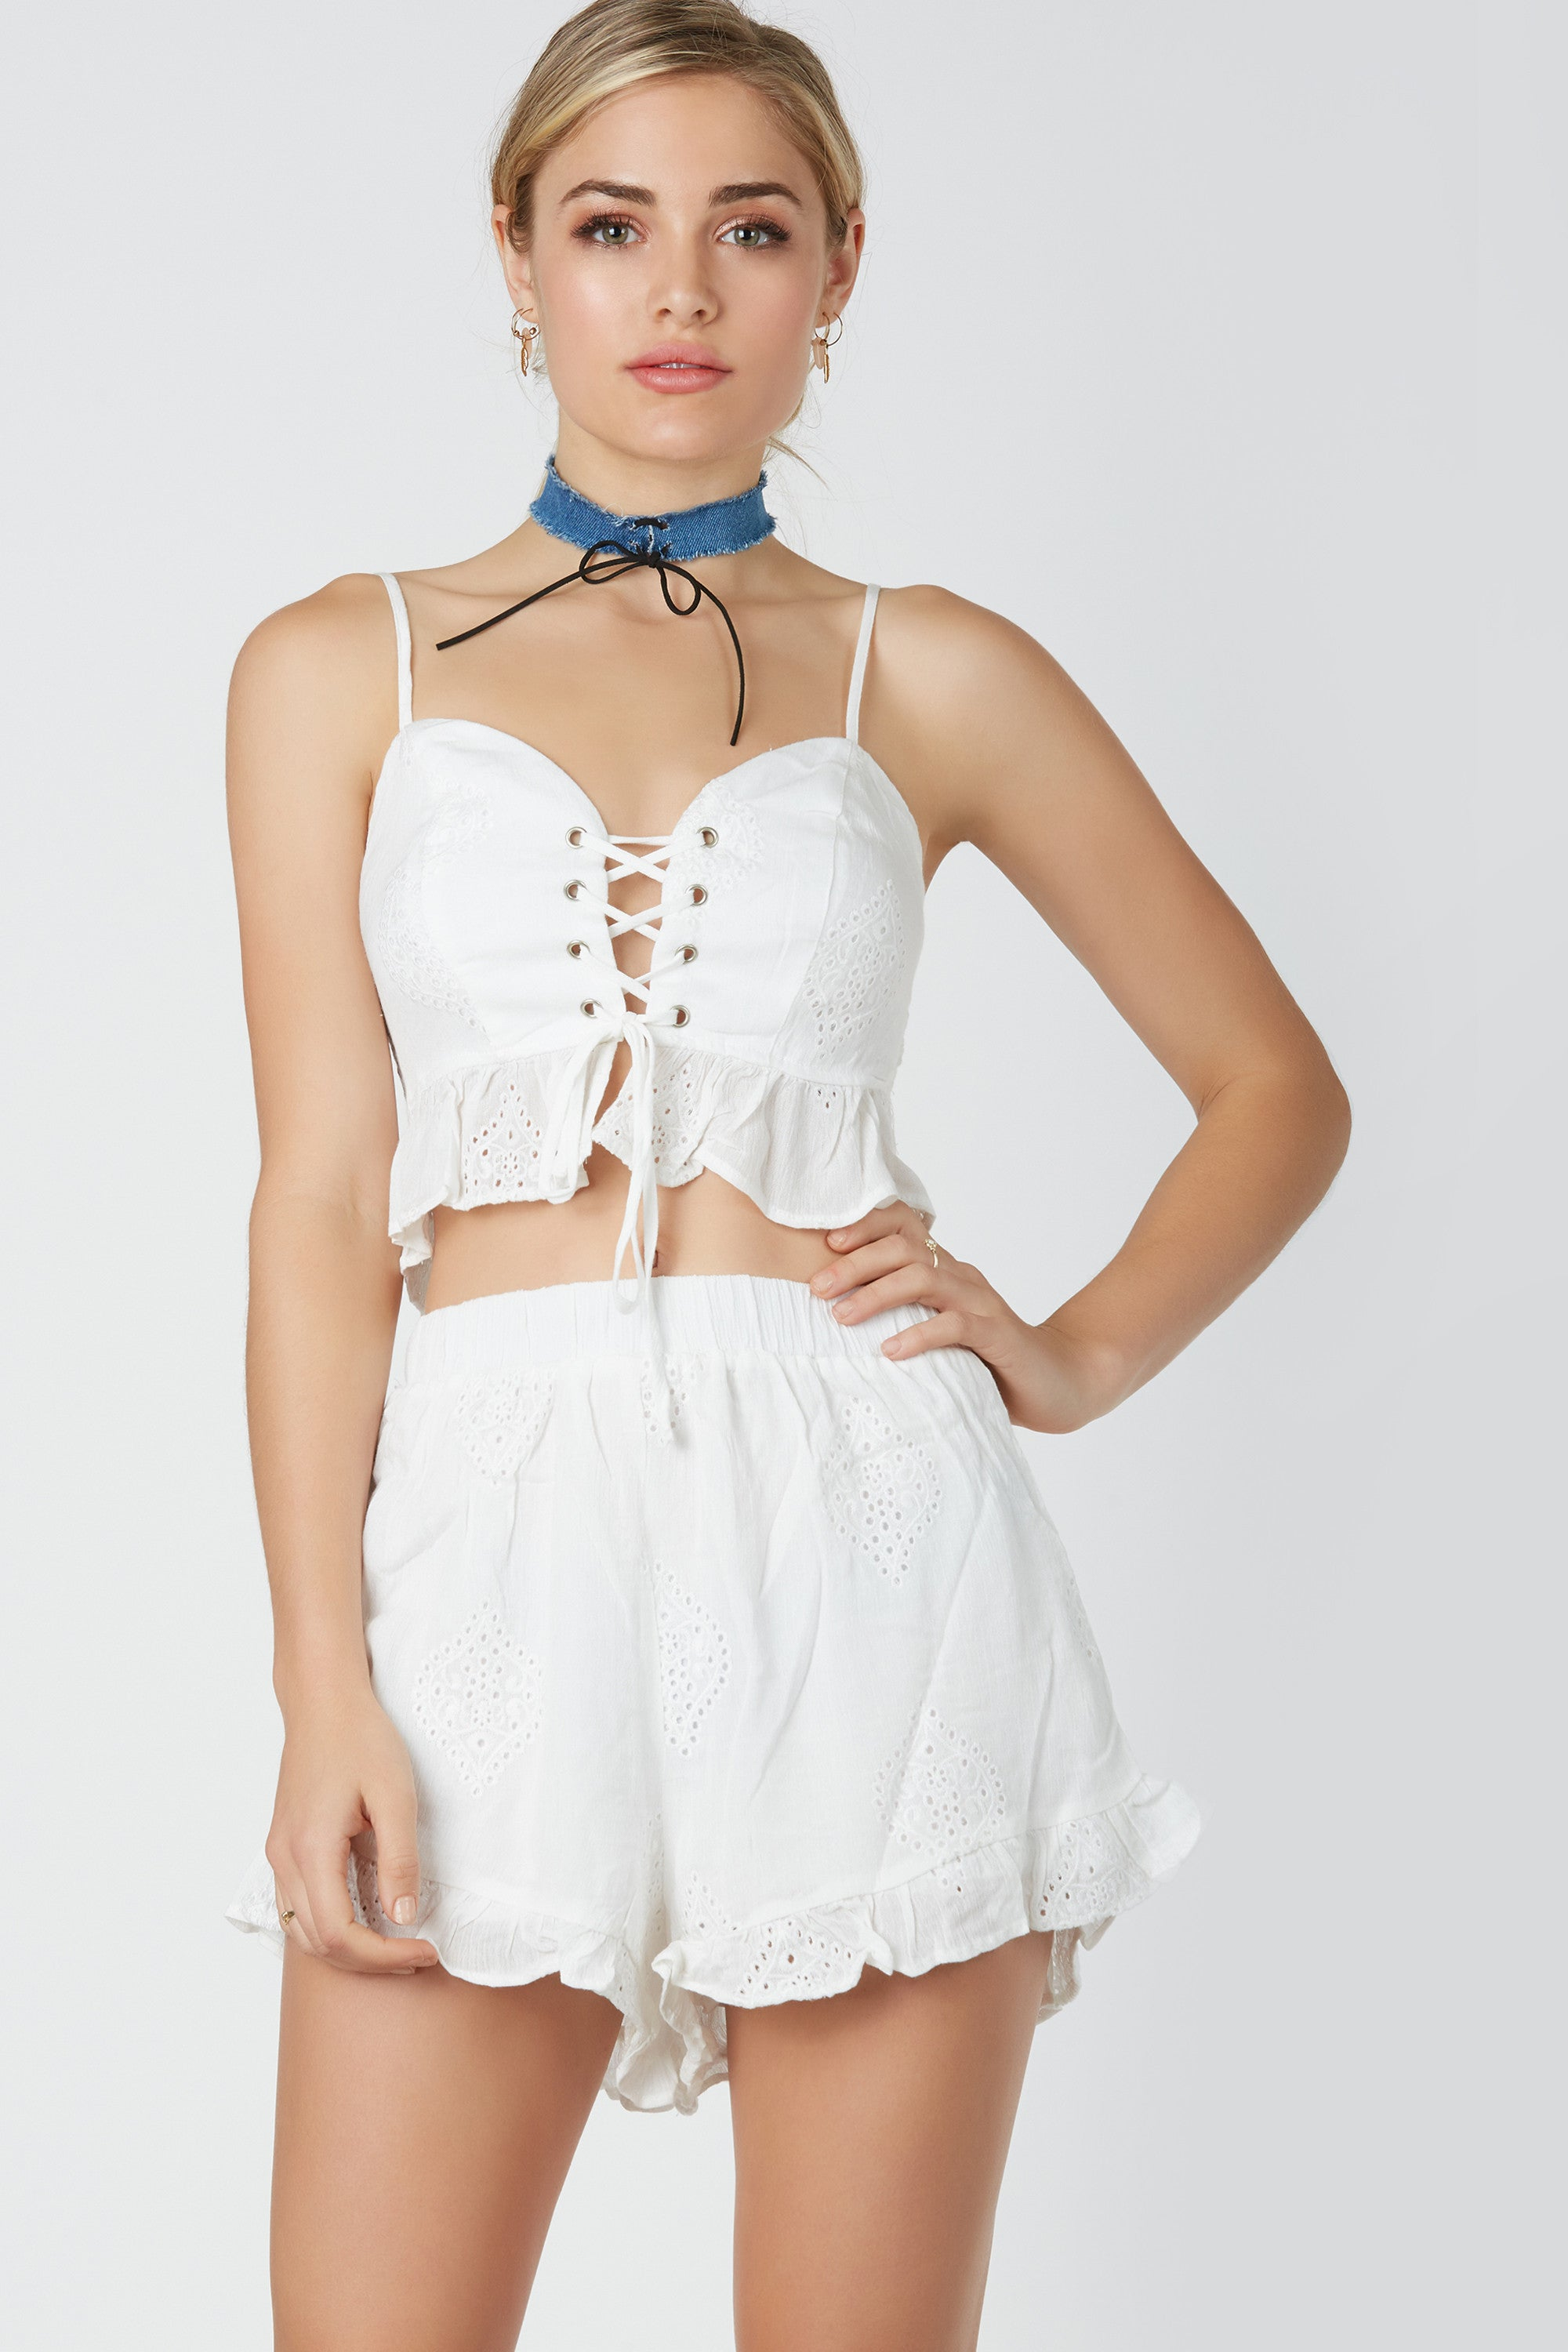 Daycation Ruffle Top